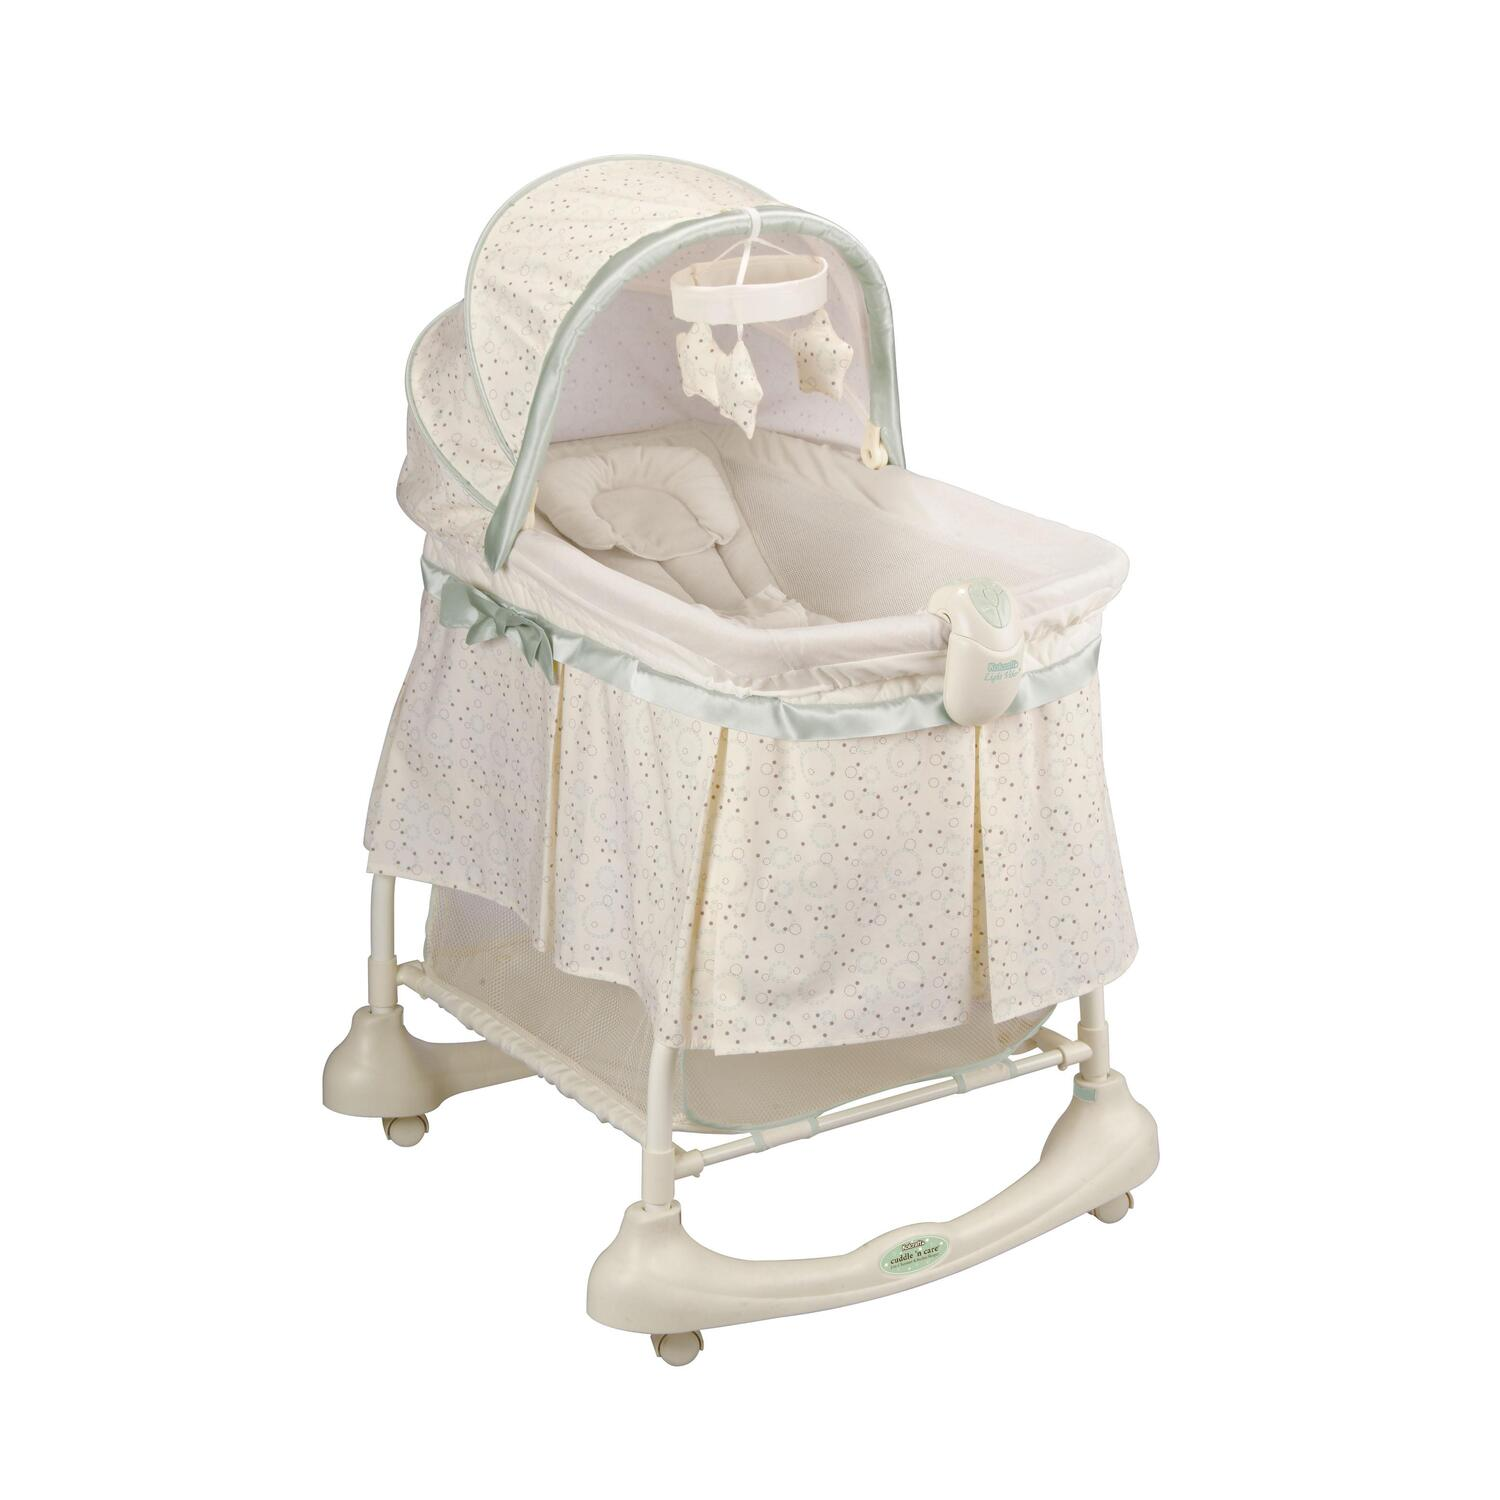 Baby Bassinet Cake Ideas And Designs